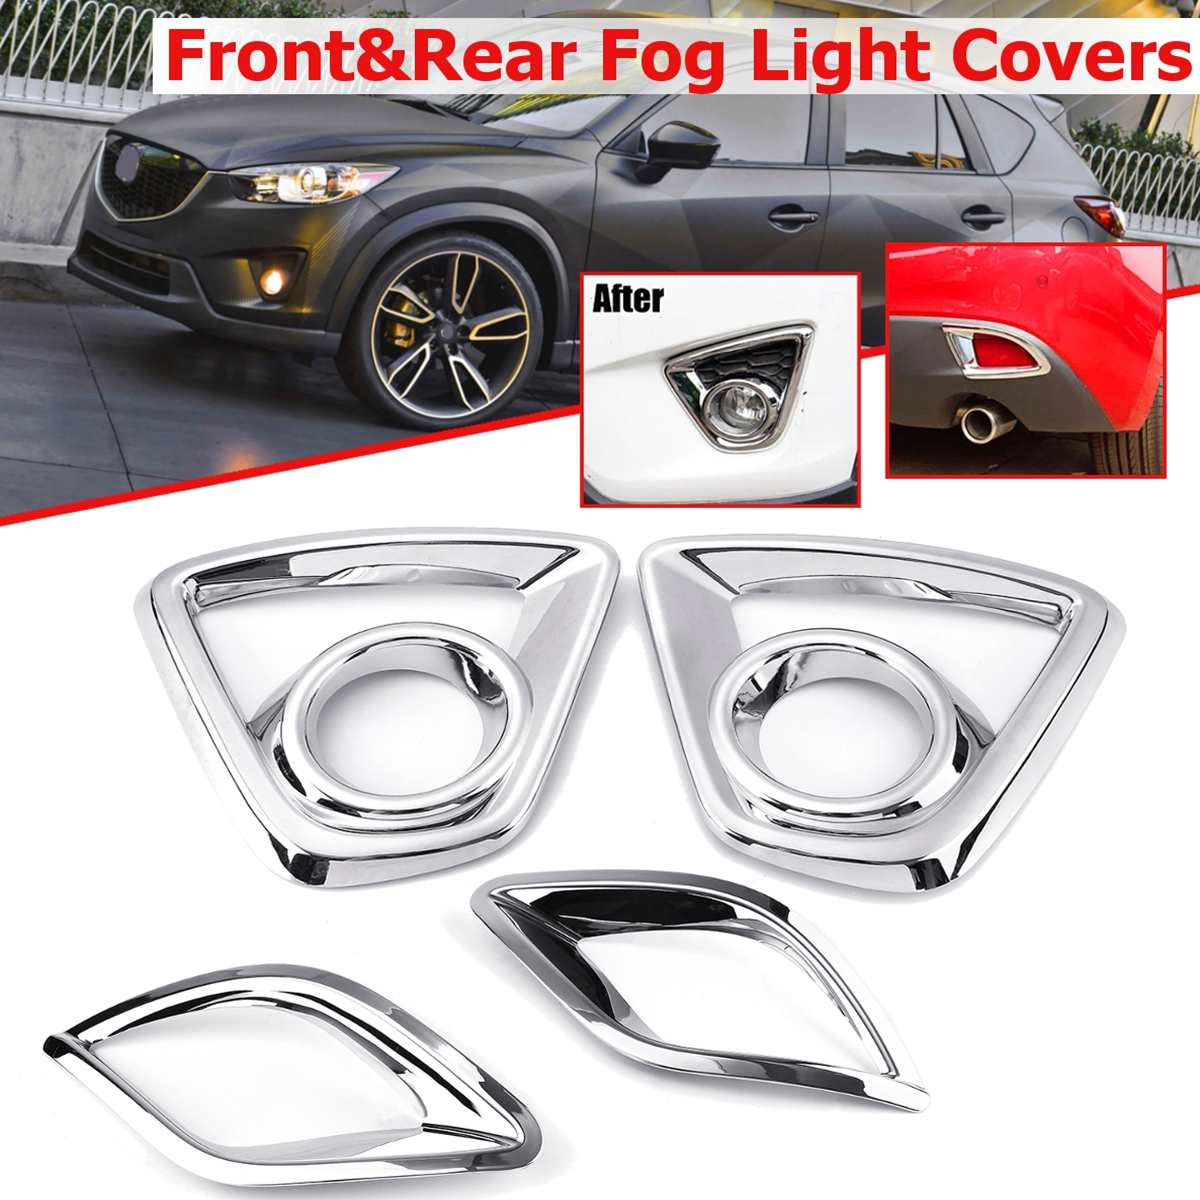 Bumper Fog light Chrome Garnish For <font><b>Mazda</b></font> Cx-5 <font><b>Cx5</b></font> 2013 <font><b>2014</b></font> 2015 2016 Car Rear Tail Lights Lamp Shade Frame Trim Cover Styling image